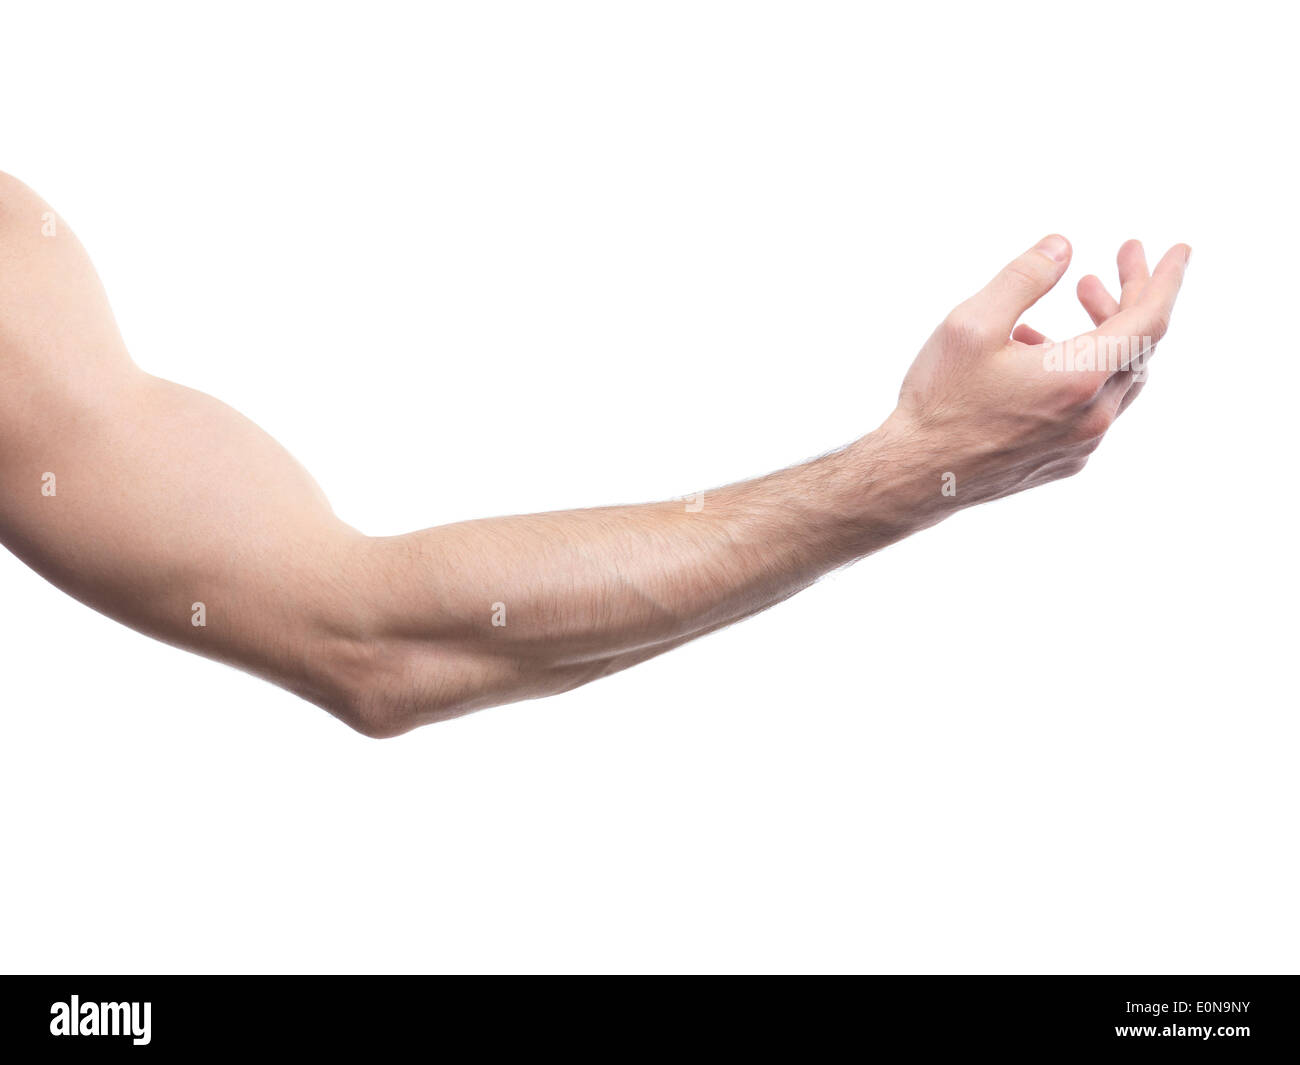 Man's arm bent at an elbow isolated on white background - Stock Image